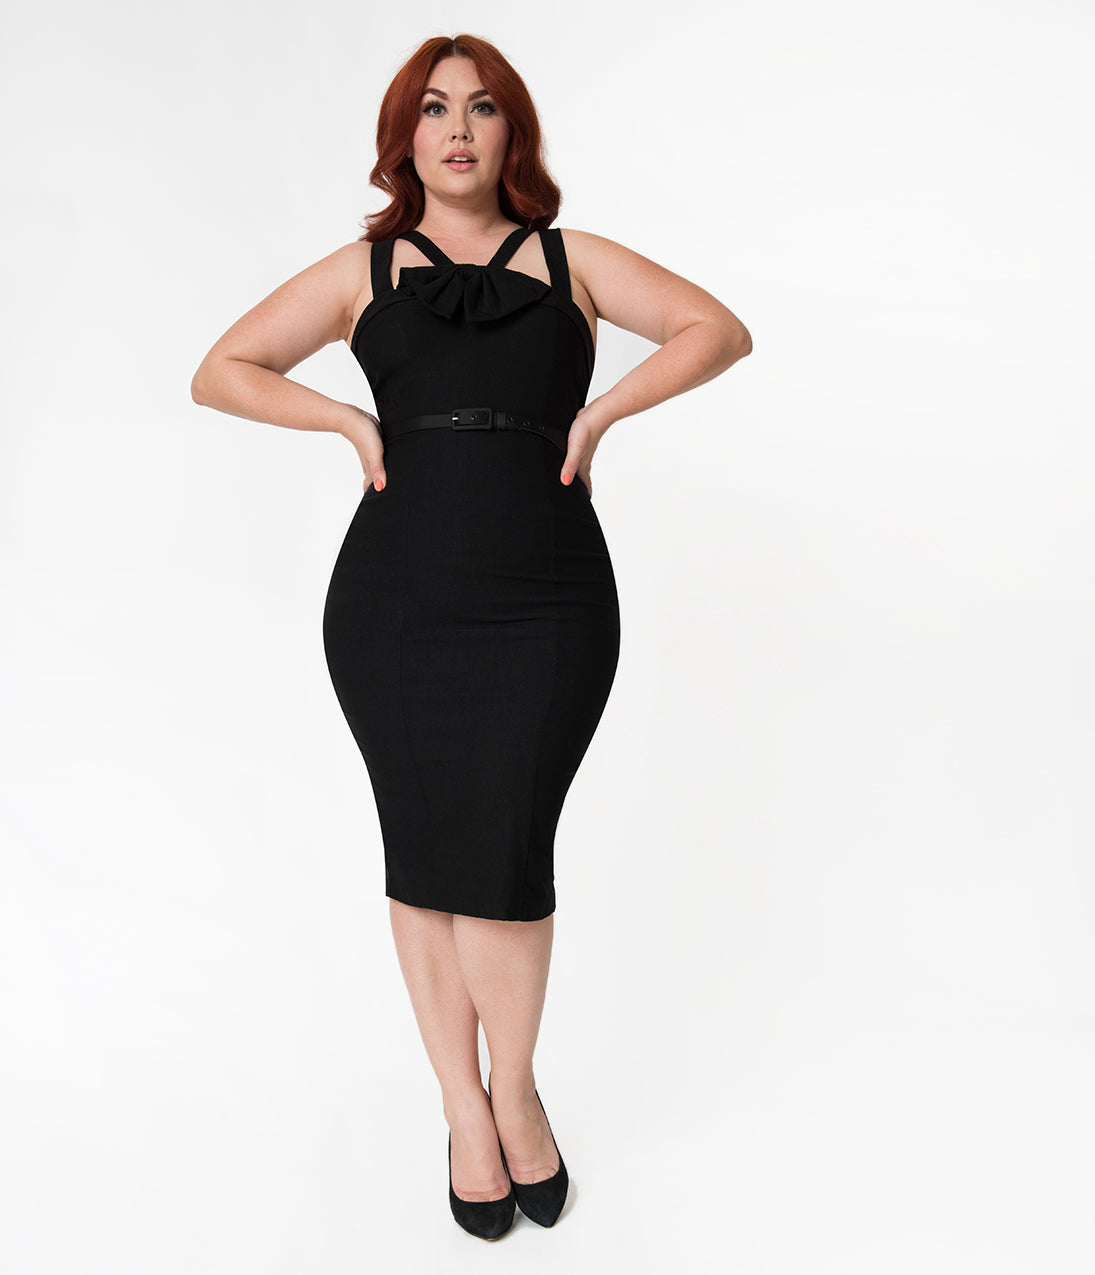 Pin Up Dresses | Pin Up Clothing Janie Bryant For Unique Vintage Plus Size 1960S Style Black Betty Wiggle Dress $88.00 AT vintagedancer.com